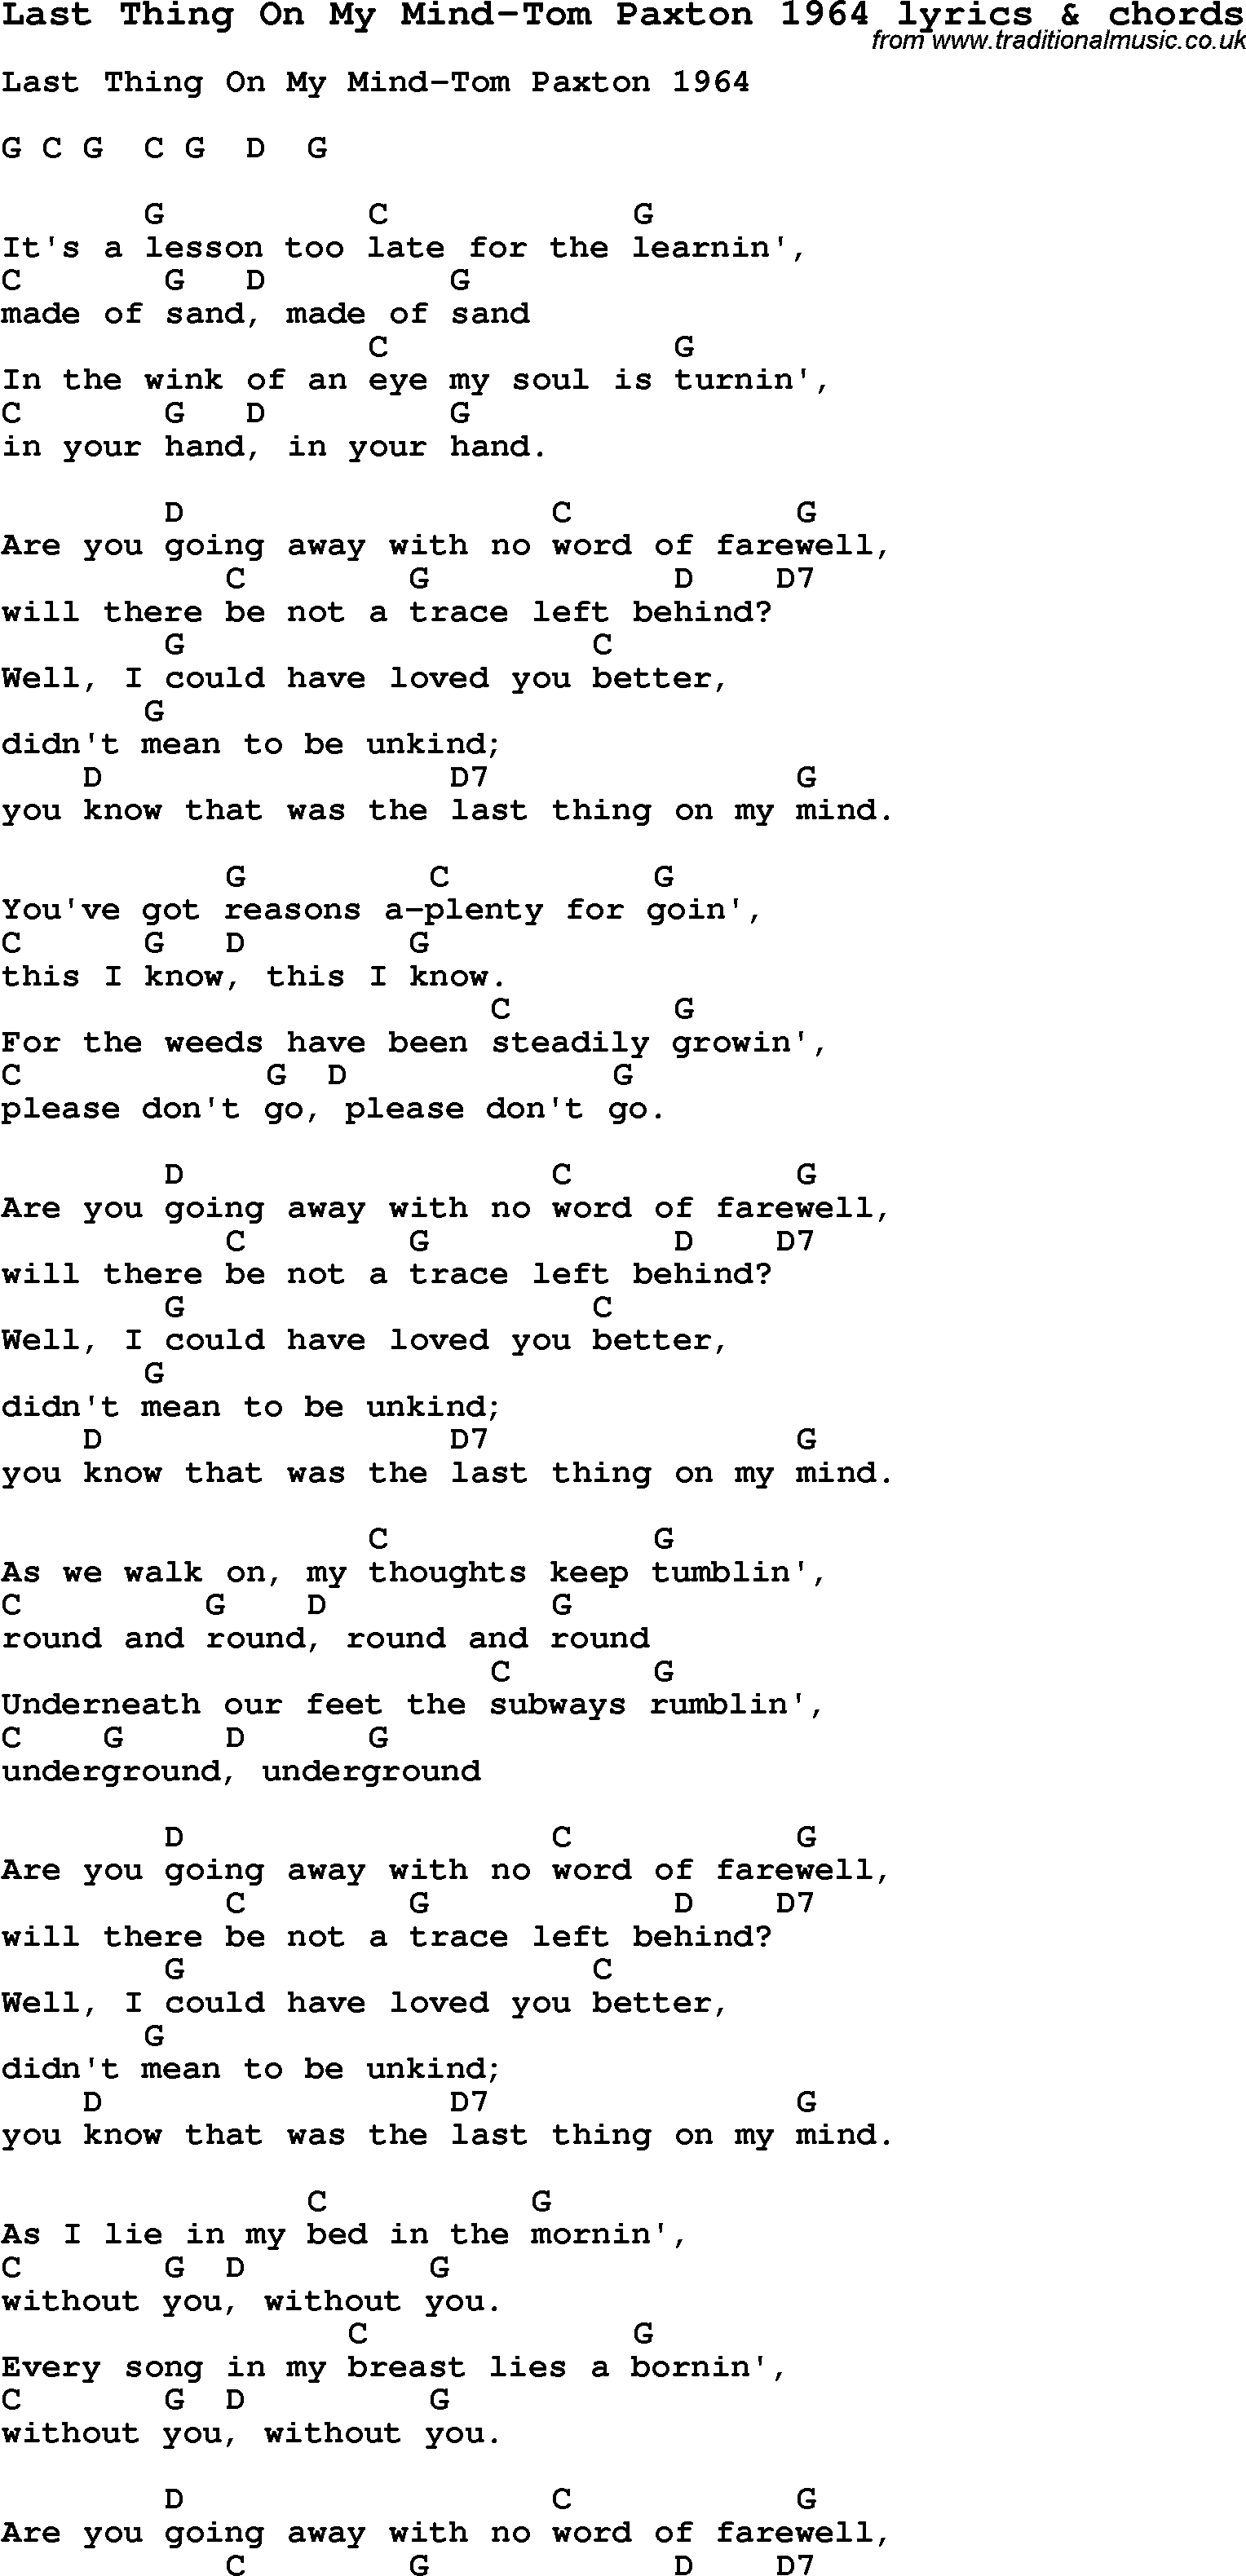 Love Song Lyrics Forlast Thing On My Mind Tom Paxton 1964 With Chords